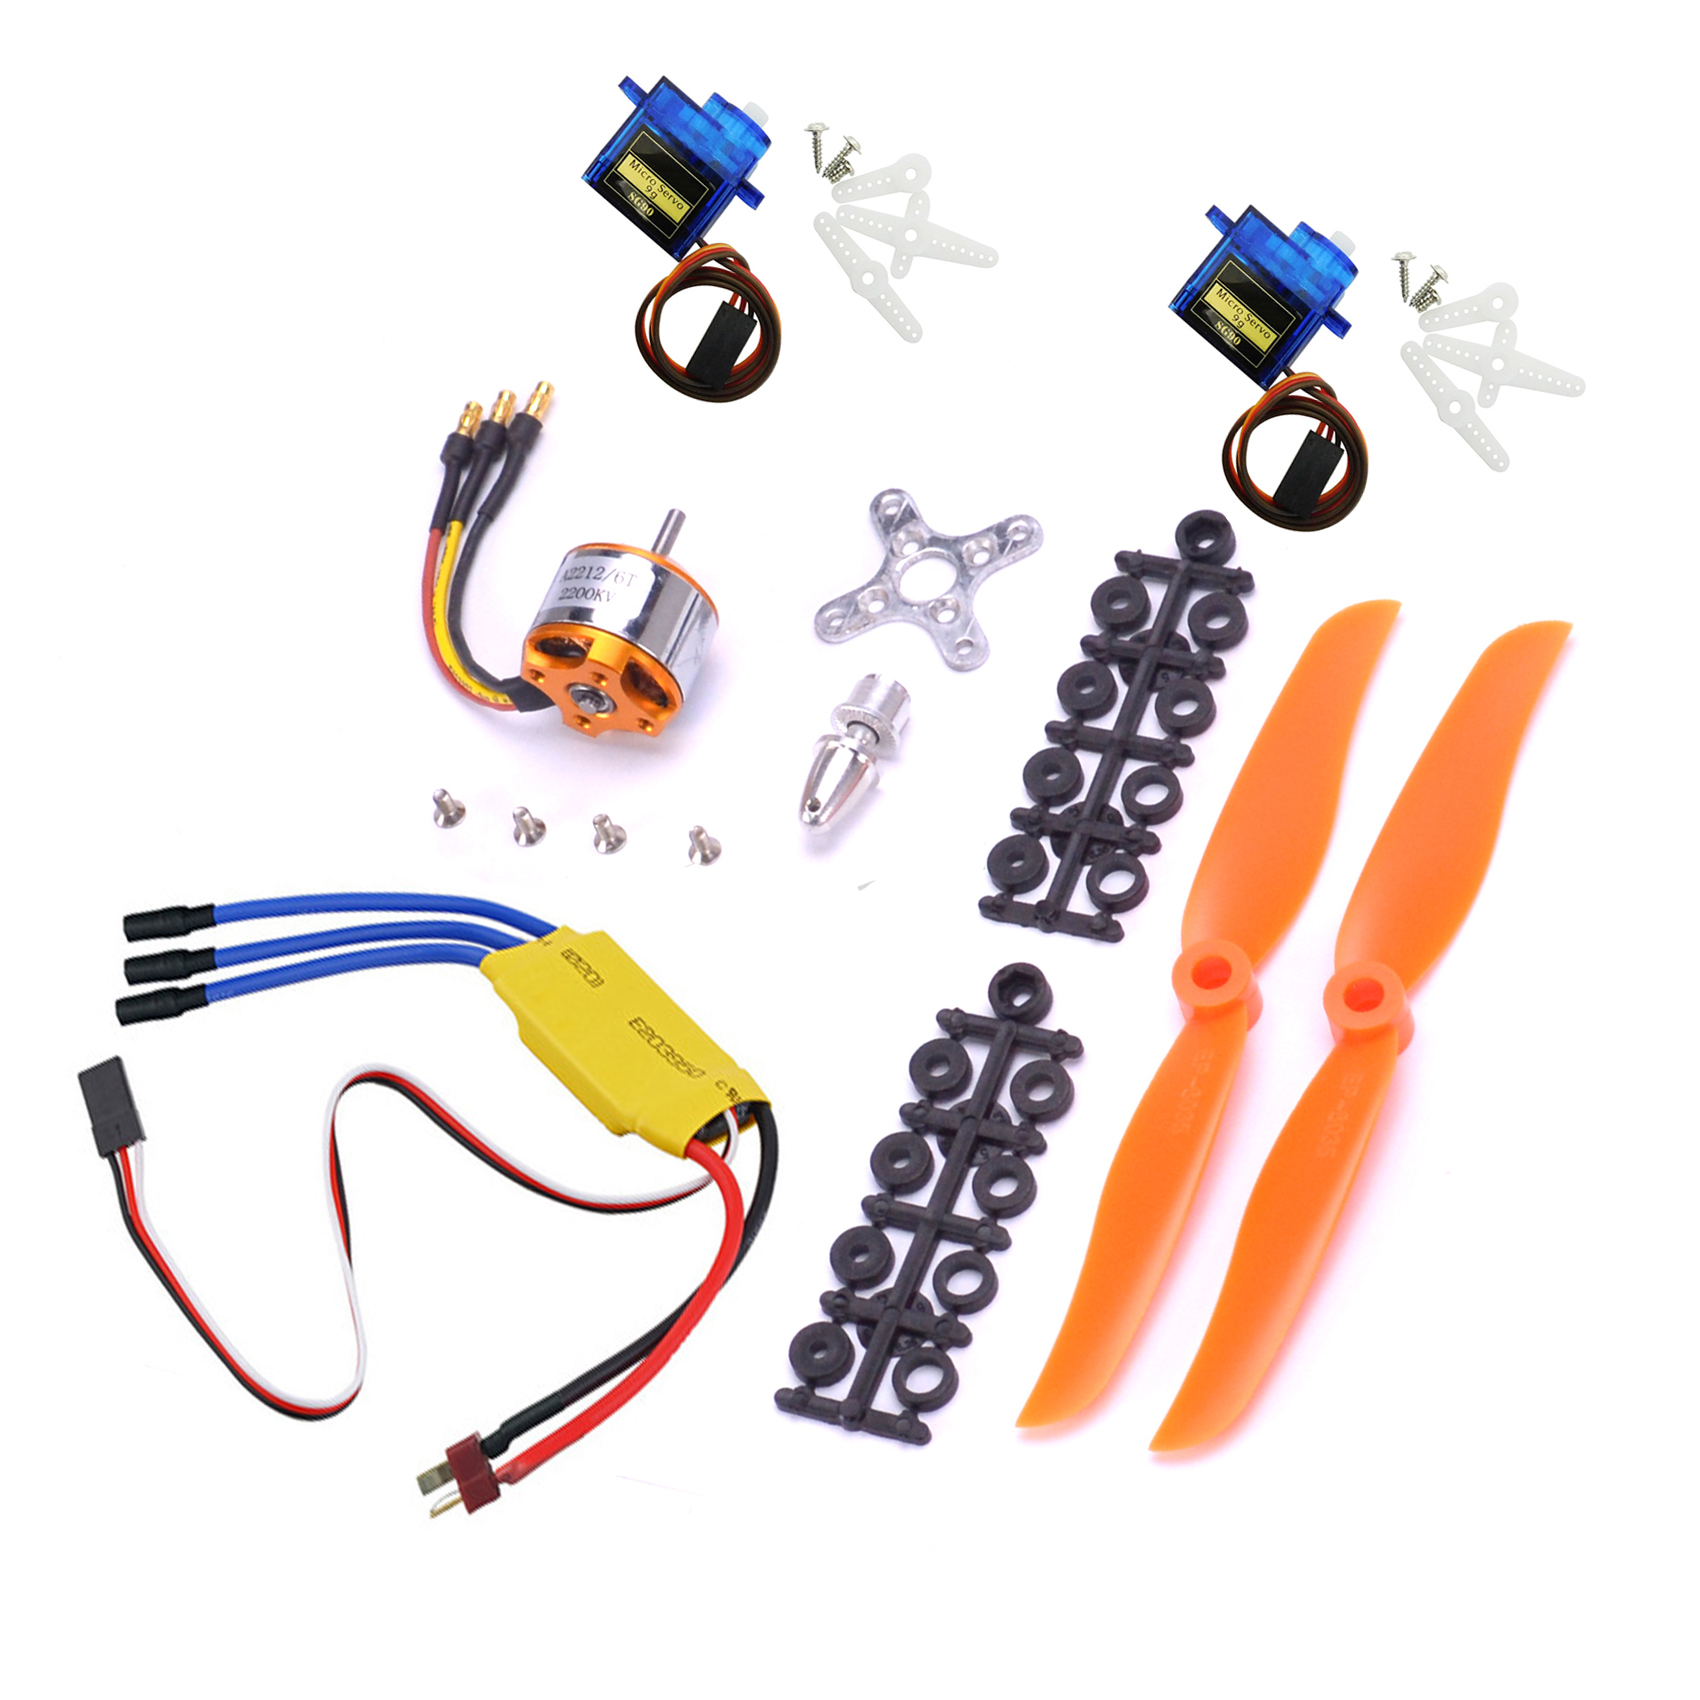 A2212 2200KV 2212 Brushless Motor 30A ESC Motor <font><b>6035</b></font> <font><b>Propeller</b></font> SG90 9G Micro Servo for RC Fixed Wing Plane Helicopter image